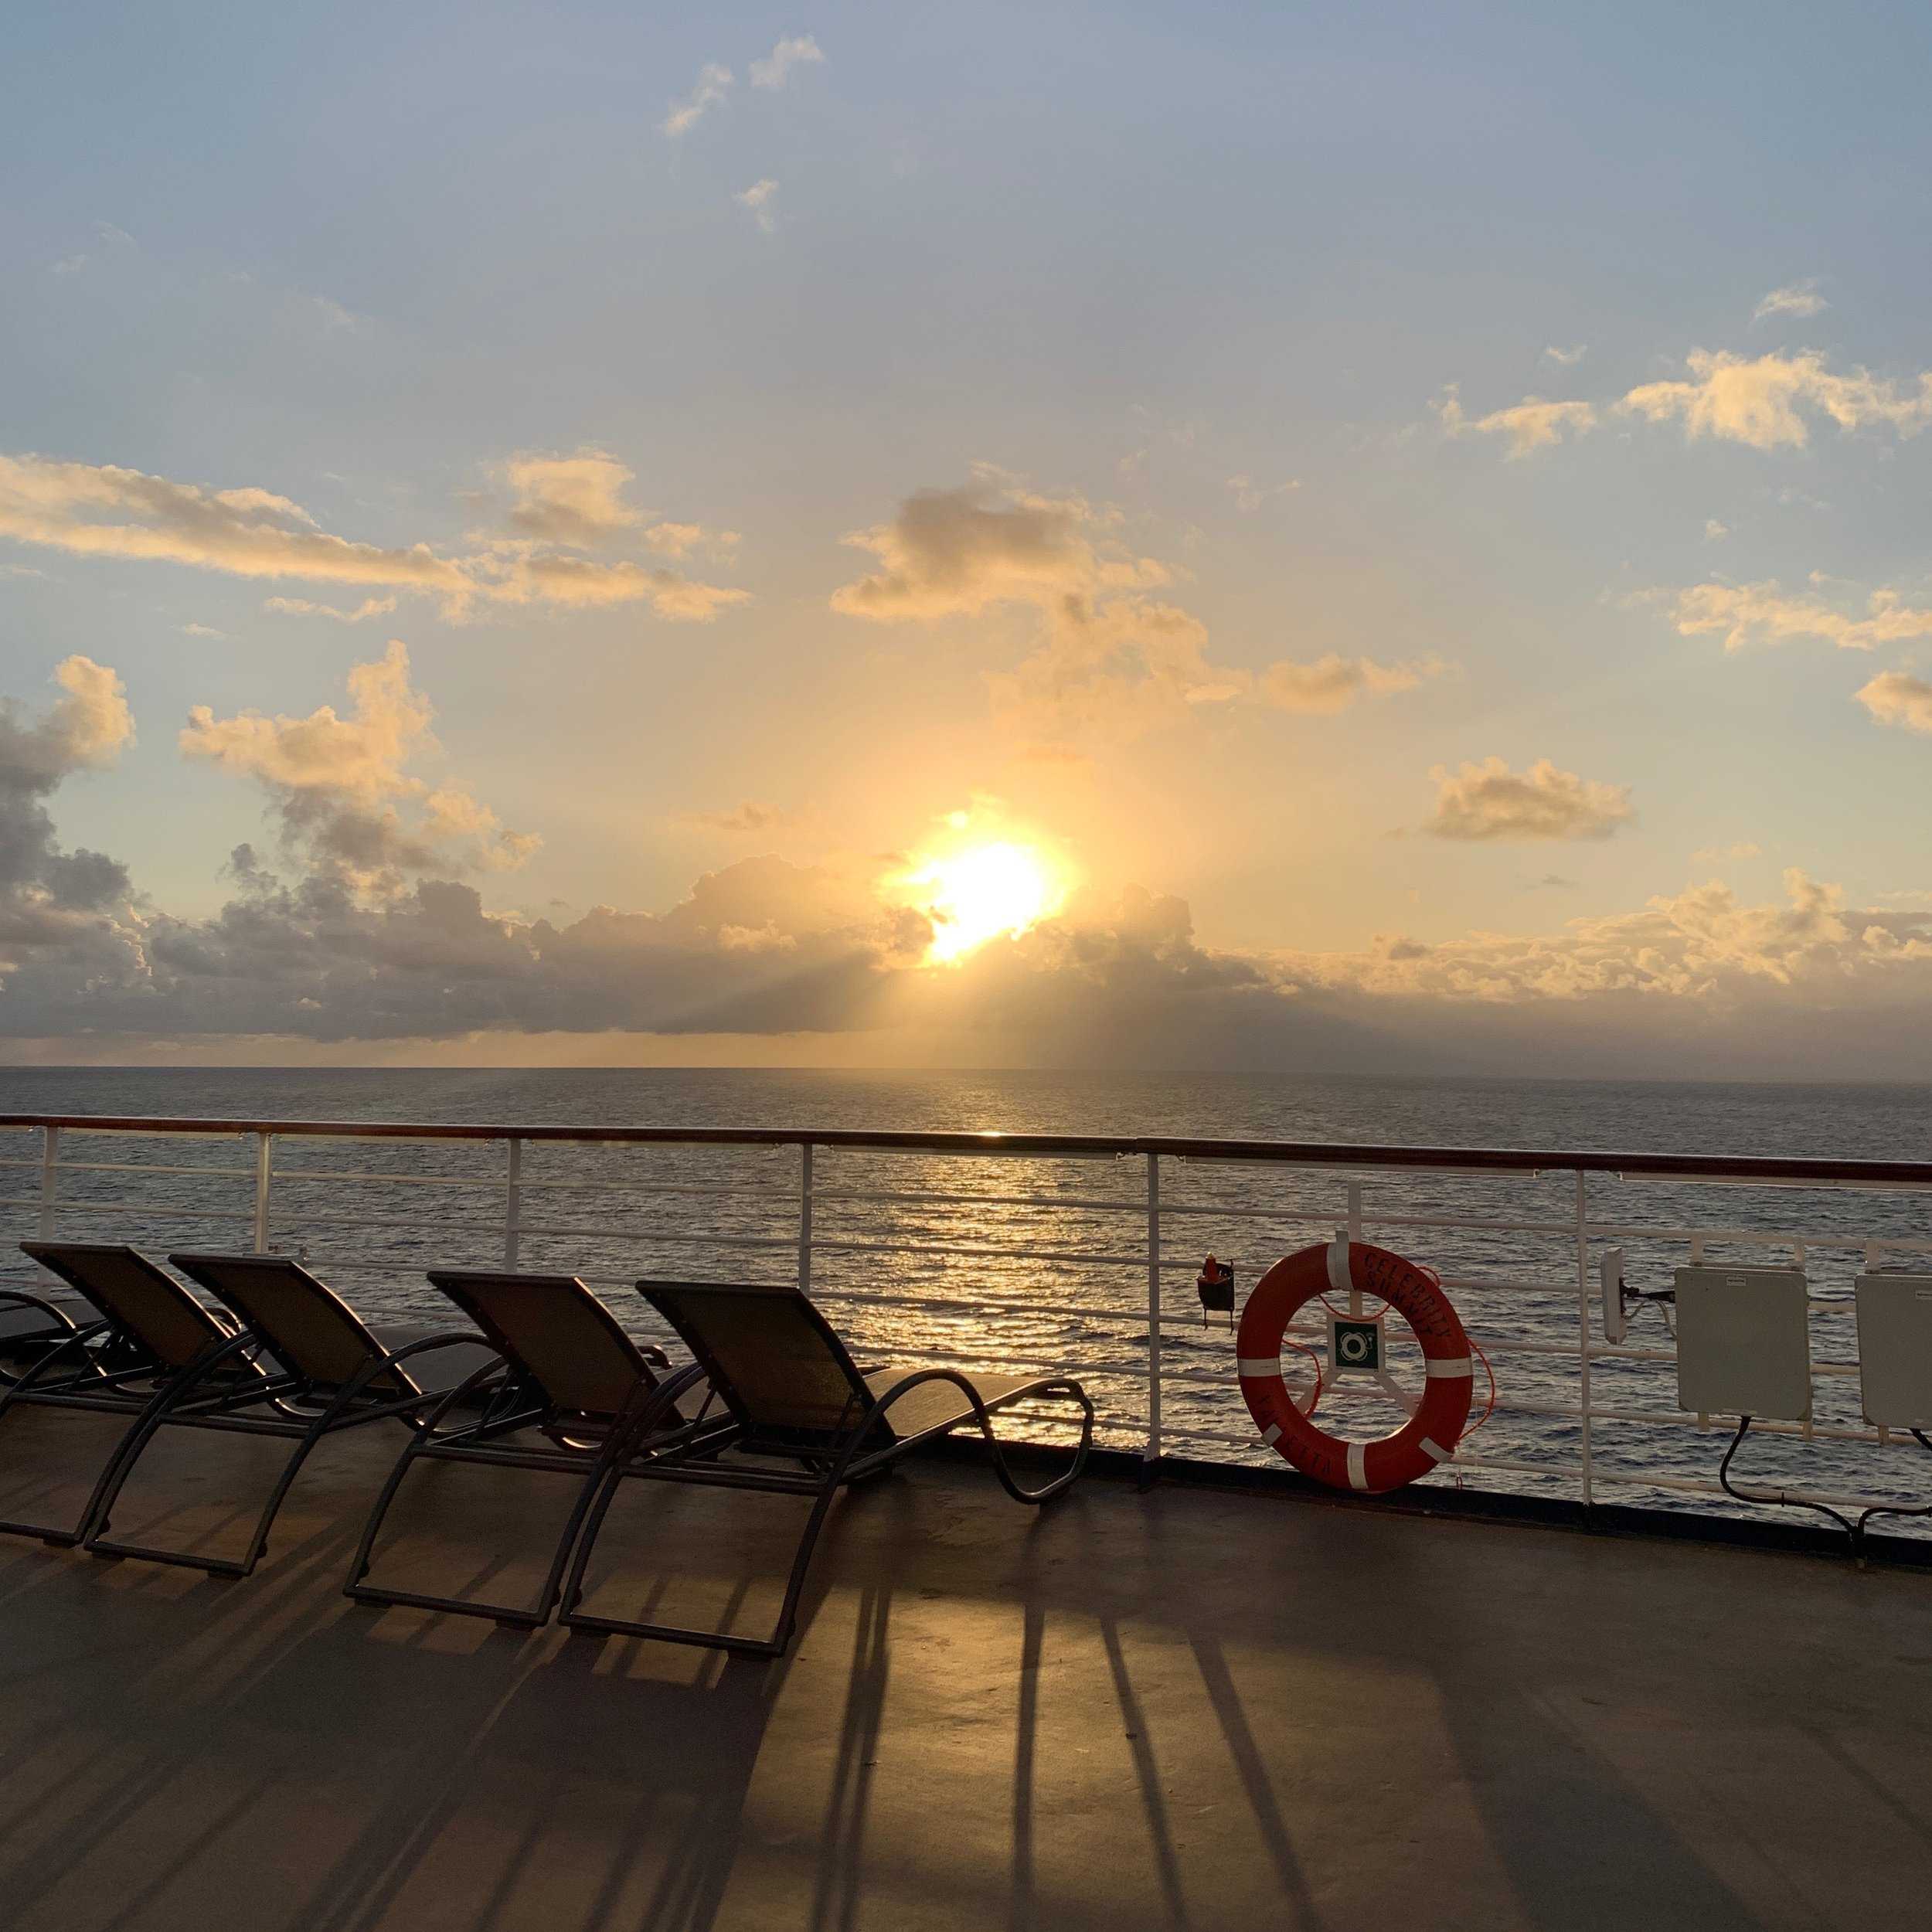 Sunrise at sea is always worth waking up for, don't you think?